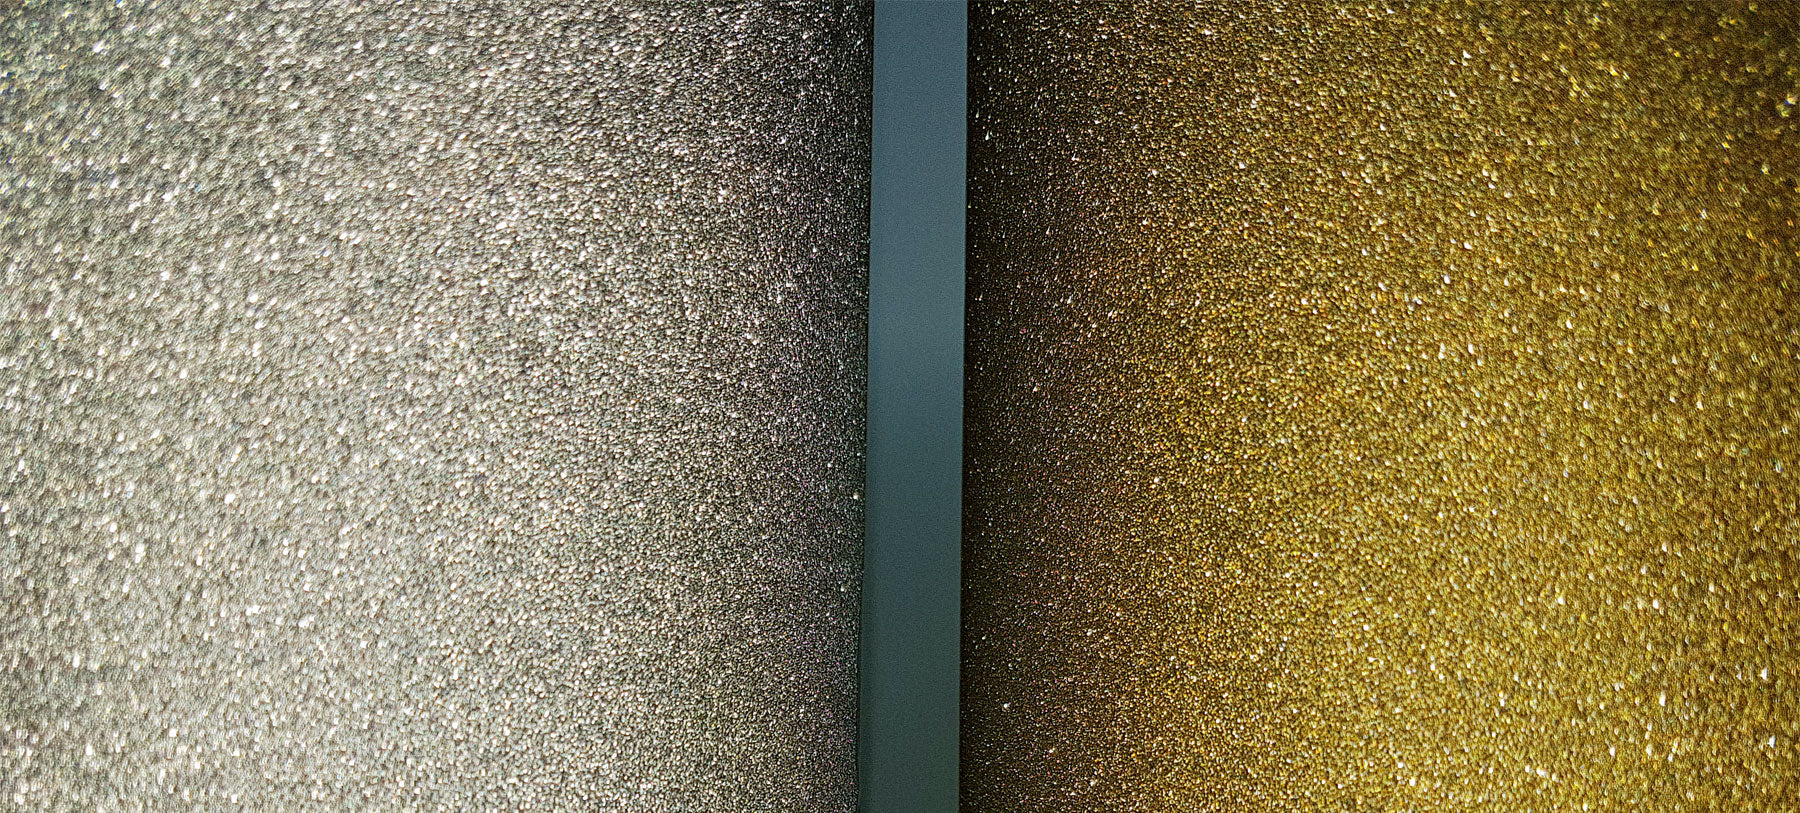 Add some sparkle with NEW Glitter Laminating Films